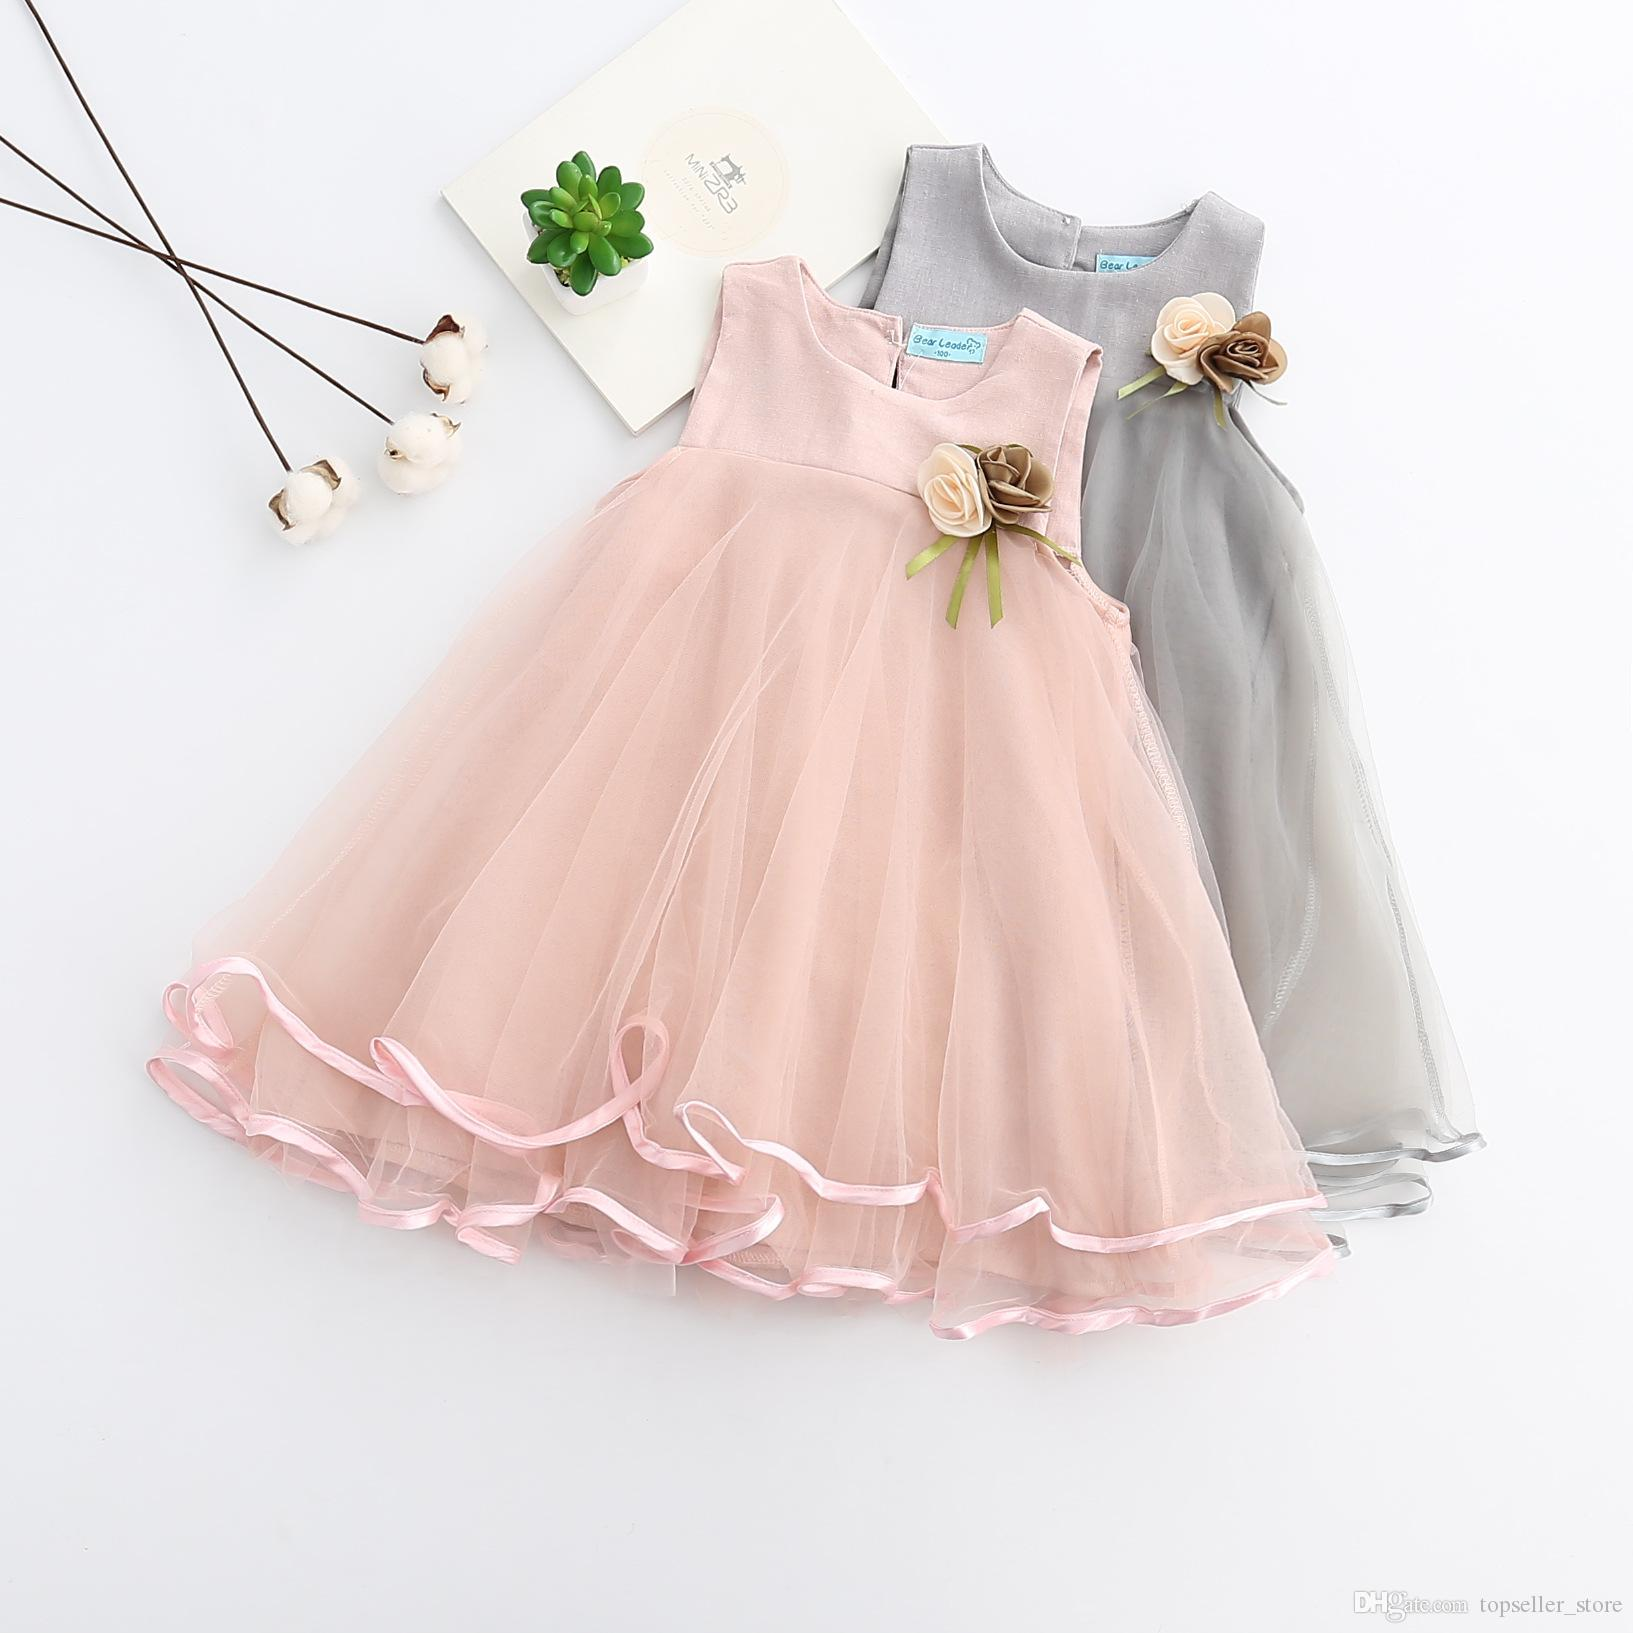 cfe65e14642d8 New Girls Dress Summer 2019 Brand Princess Dress lace Sleeveless Appliques  Floral fashion Design for Girls Clothes Party Dress